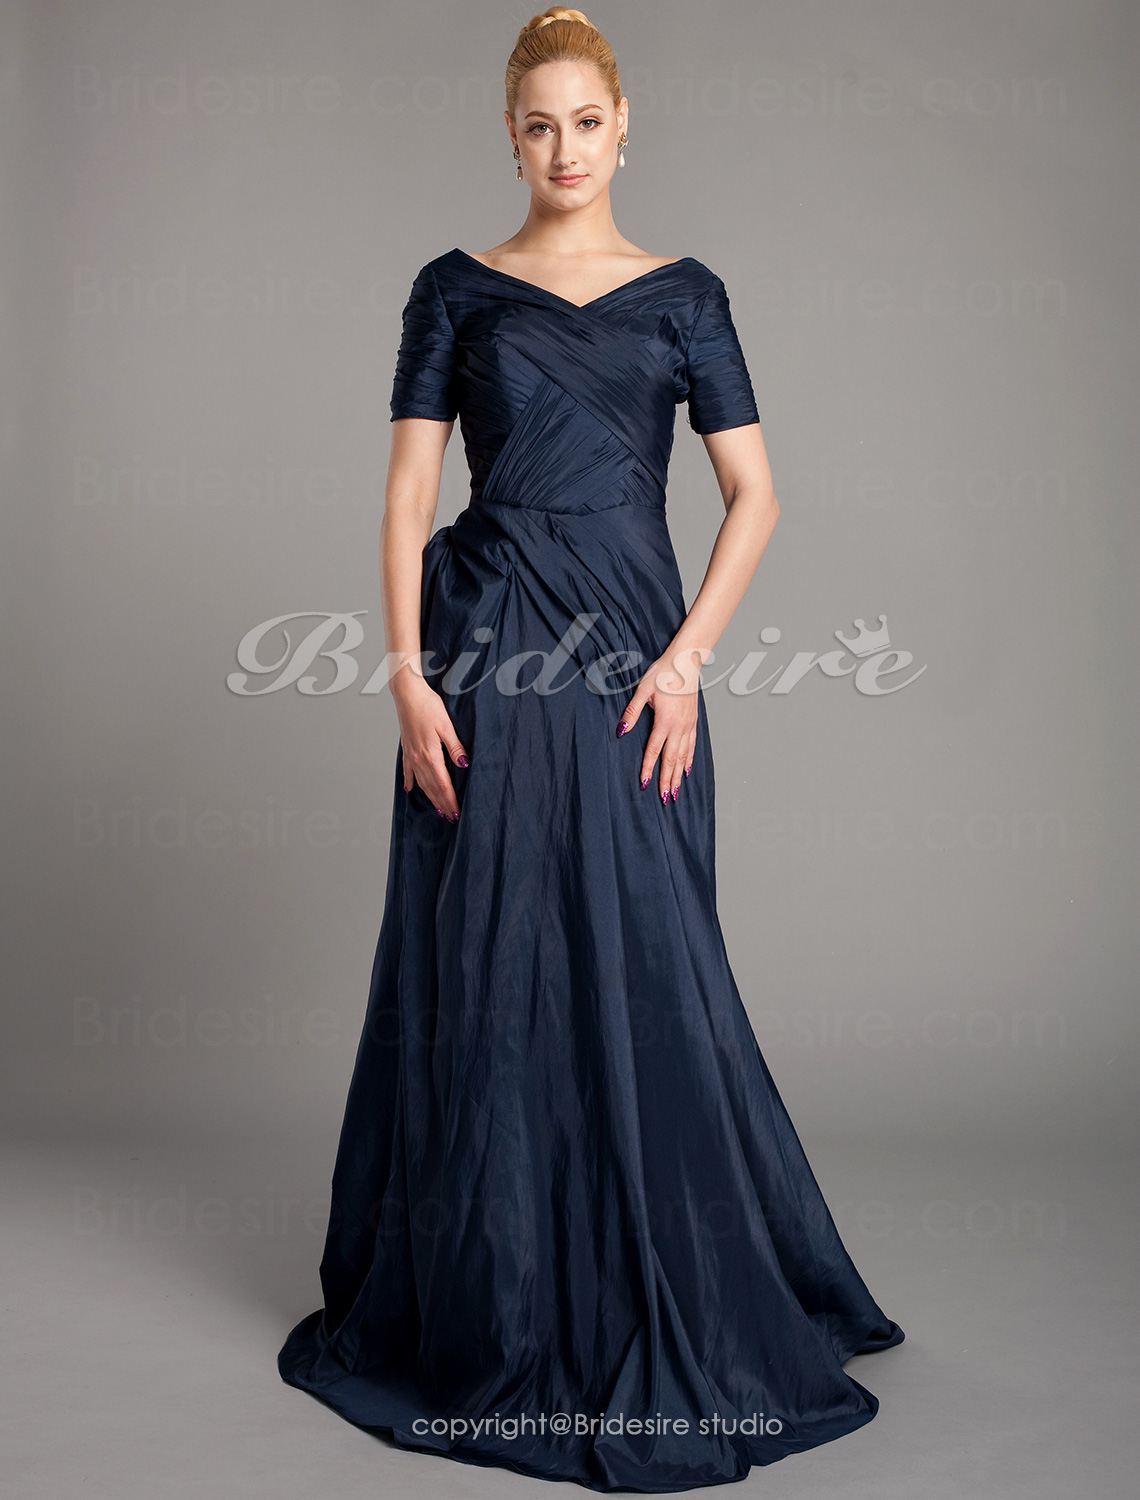 Sheath/Column Taffeta Floor-length V-neck Mother of the Bride Dress